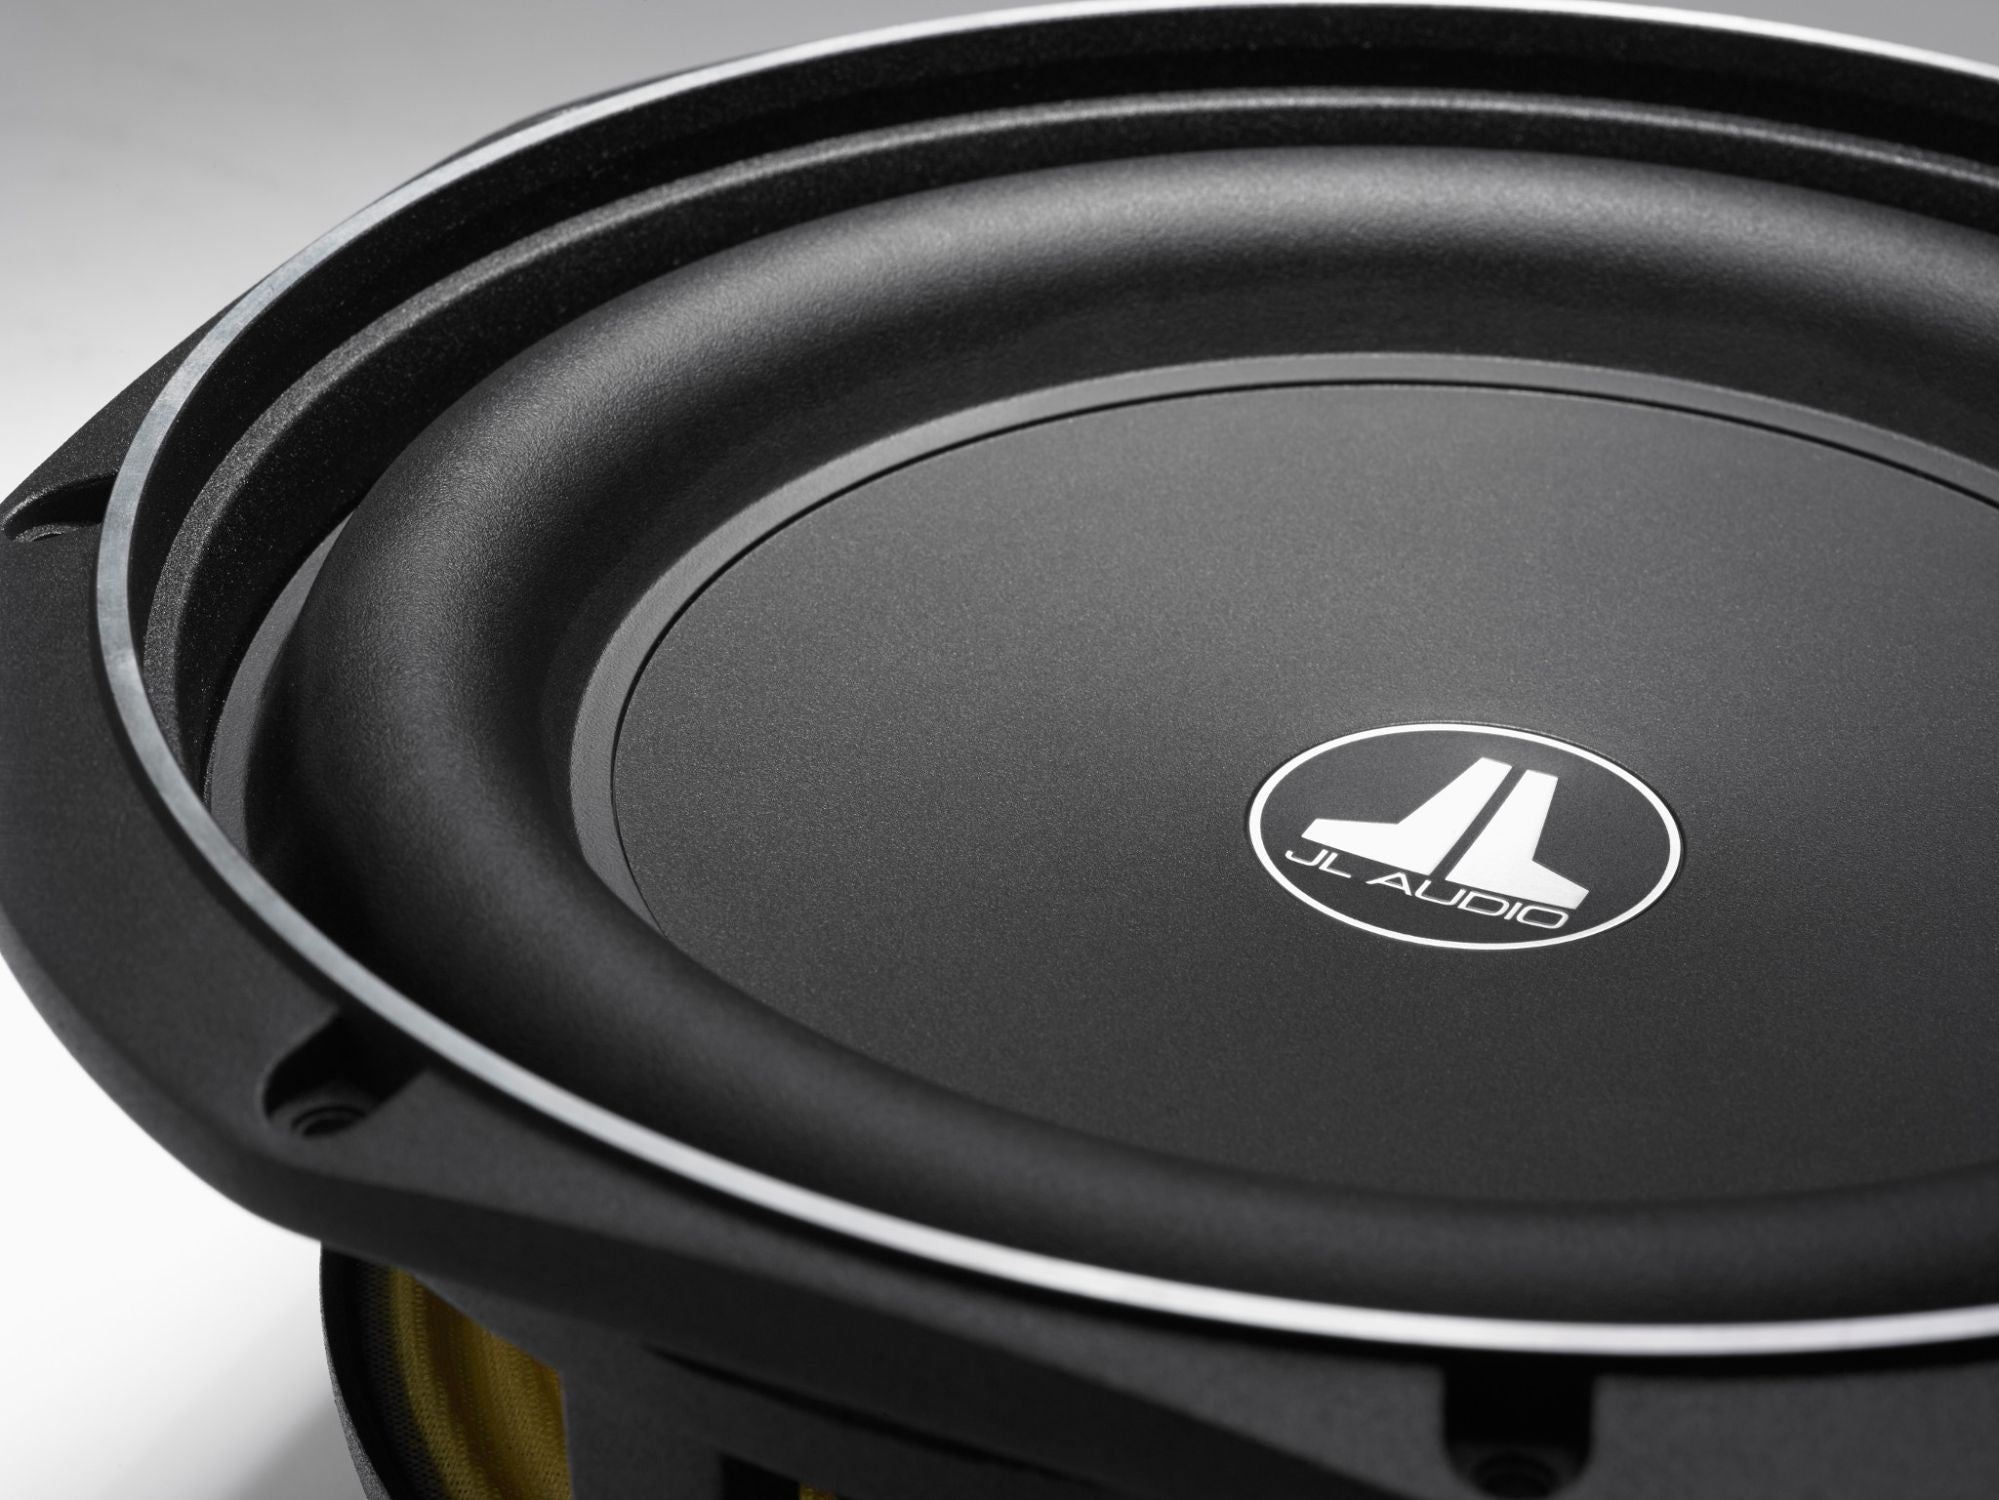 Detail of 10TW1 Subwoofer showing Frame and Surround on Right Edge